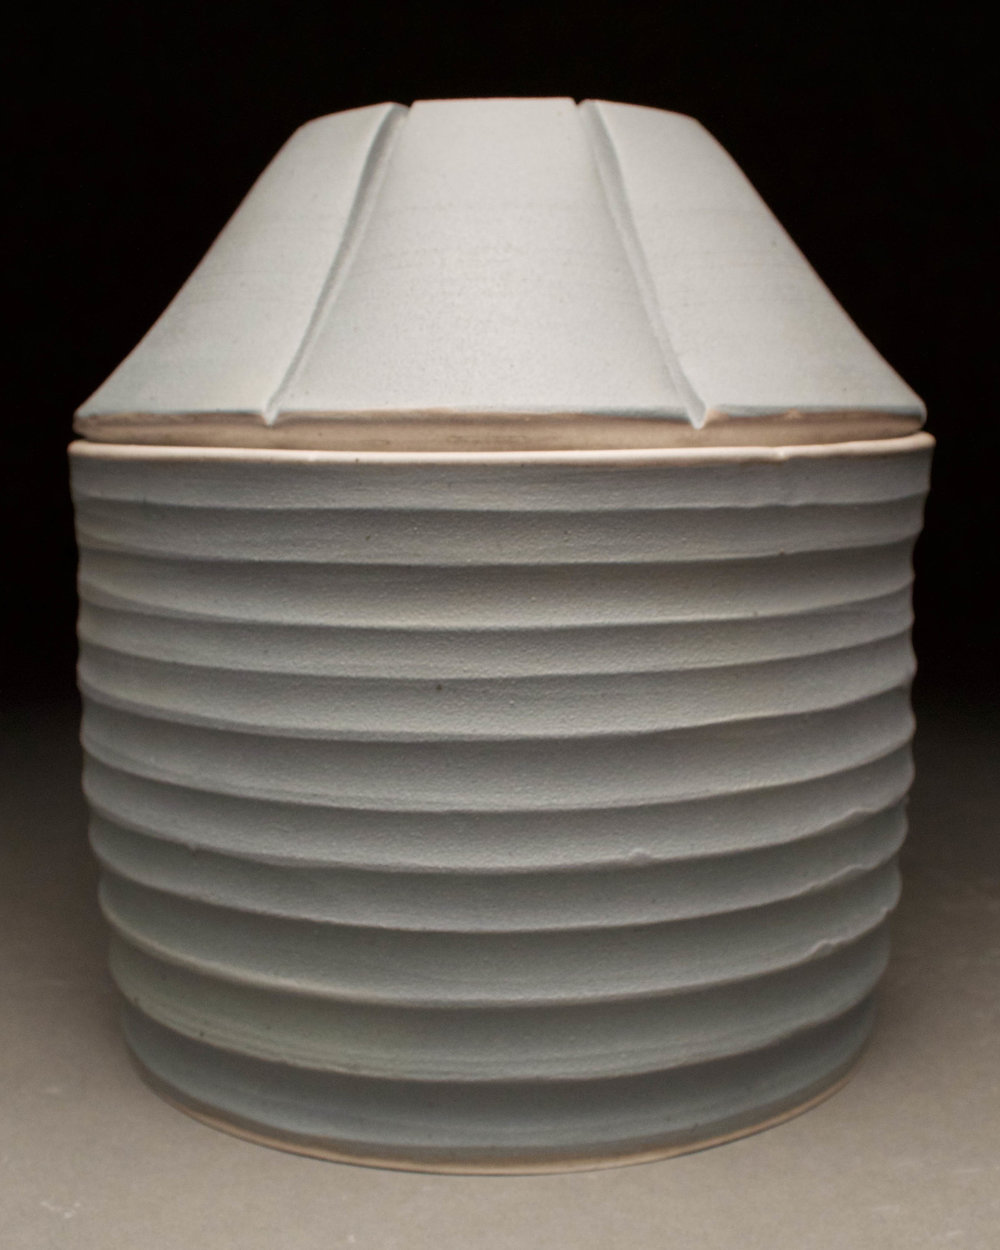 Grain Bin Jar #4  7x7x8  ceramic  $70